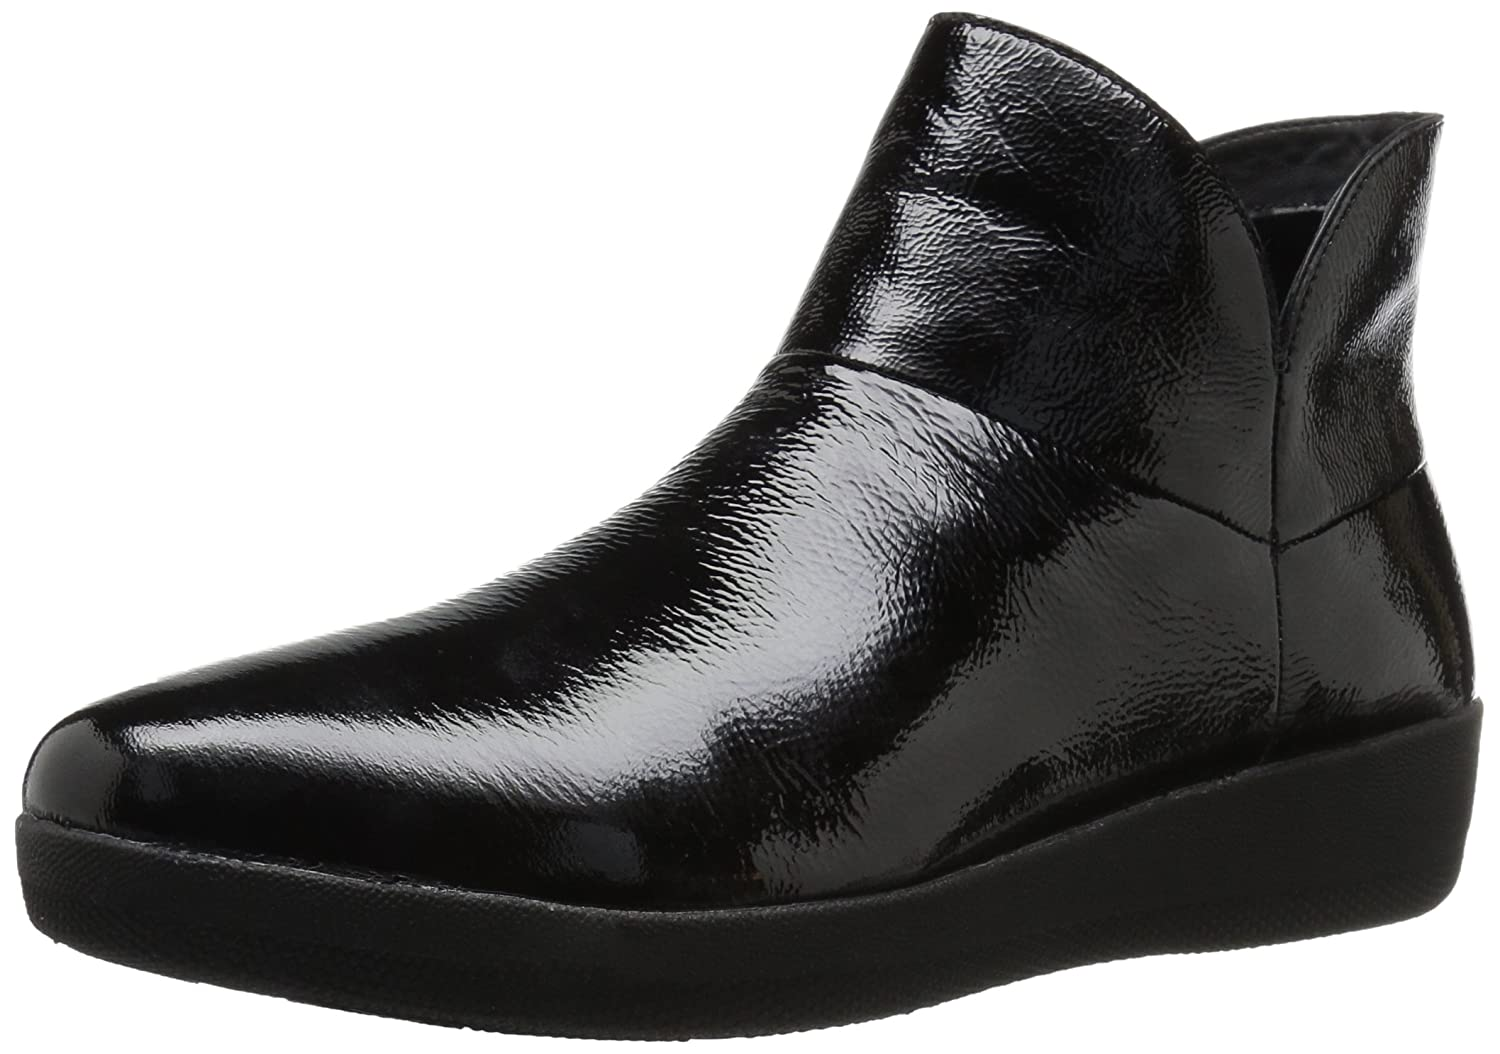 FitFlop Women's Supermod Boot Ankle Bootie B01IC22FX2 6.5 B(M) US|Black Patent